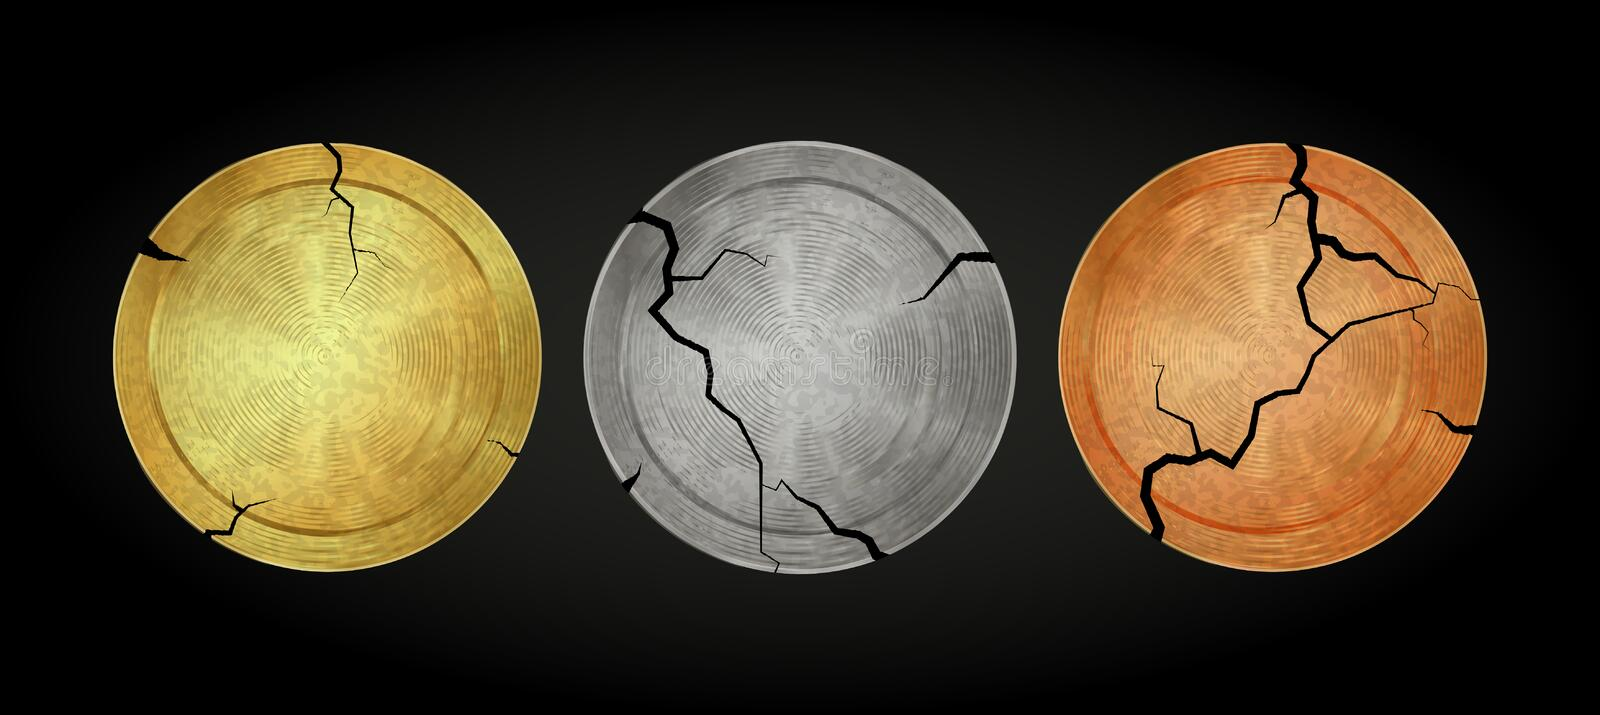 Vector old blank antique coins of gold silver bronze stock illustration